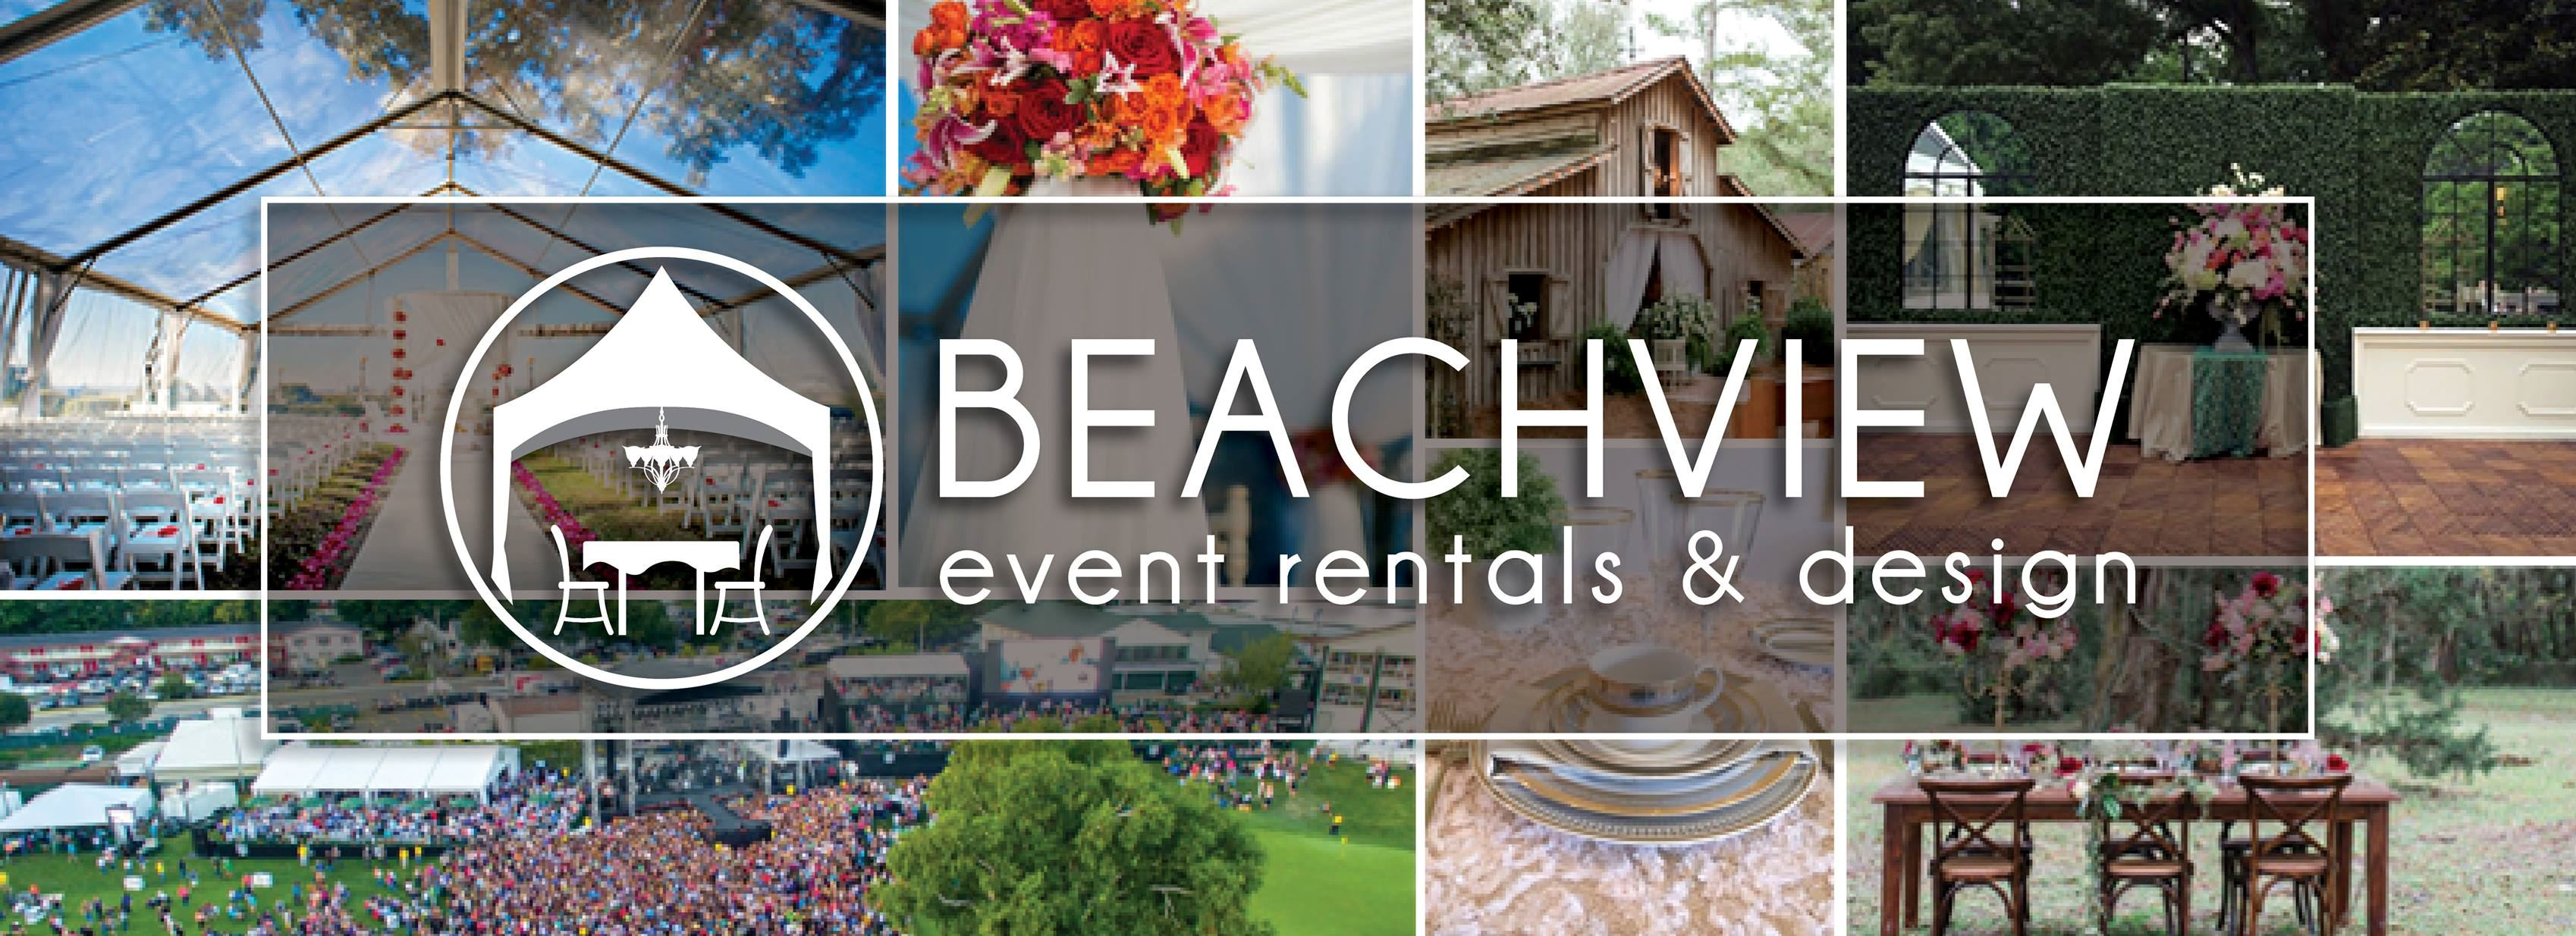 Beachview Event Rentals & Design St. Simons Island - 1